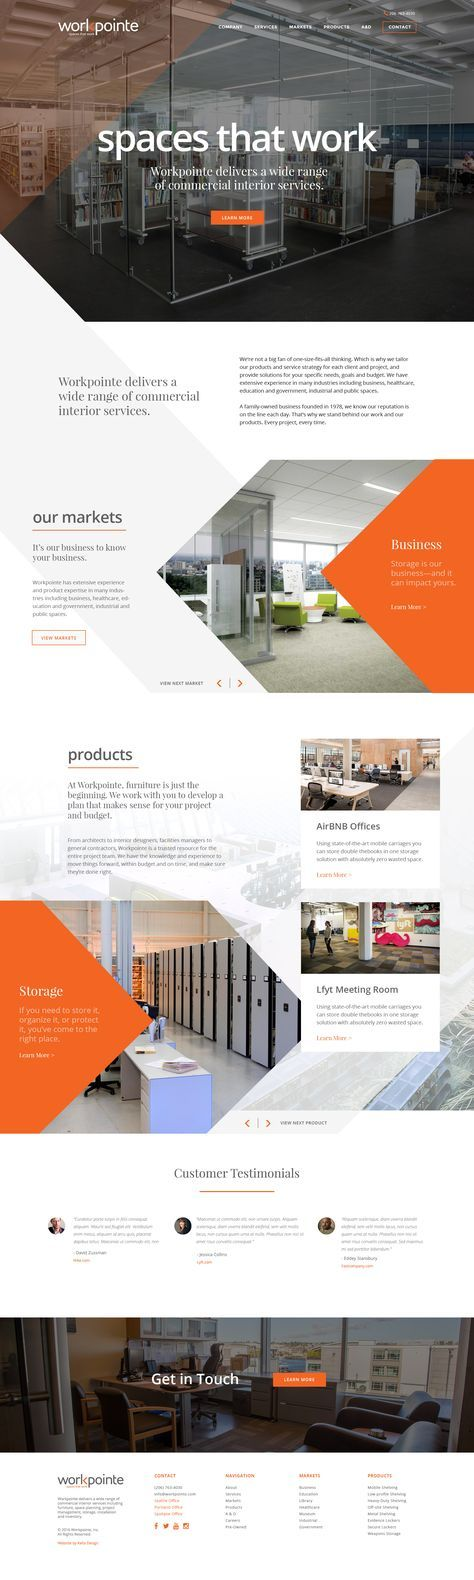 Workpointe interiors